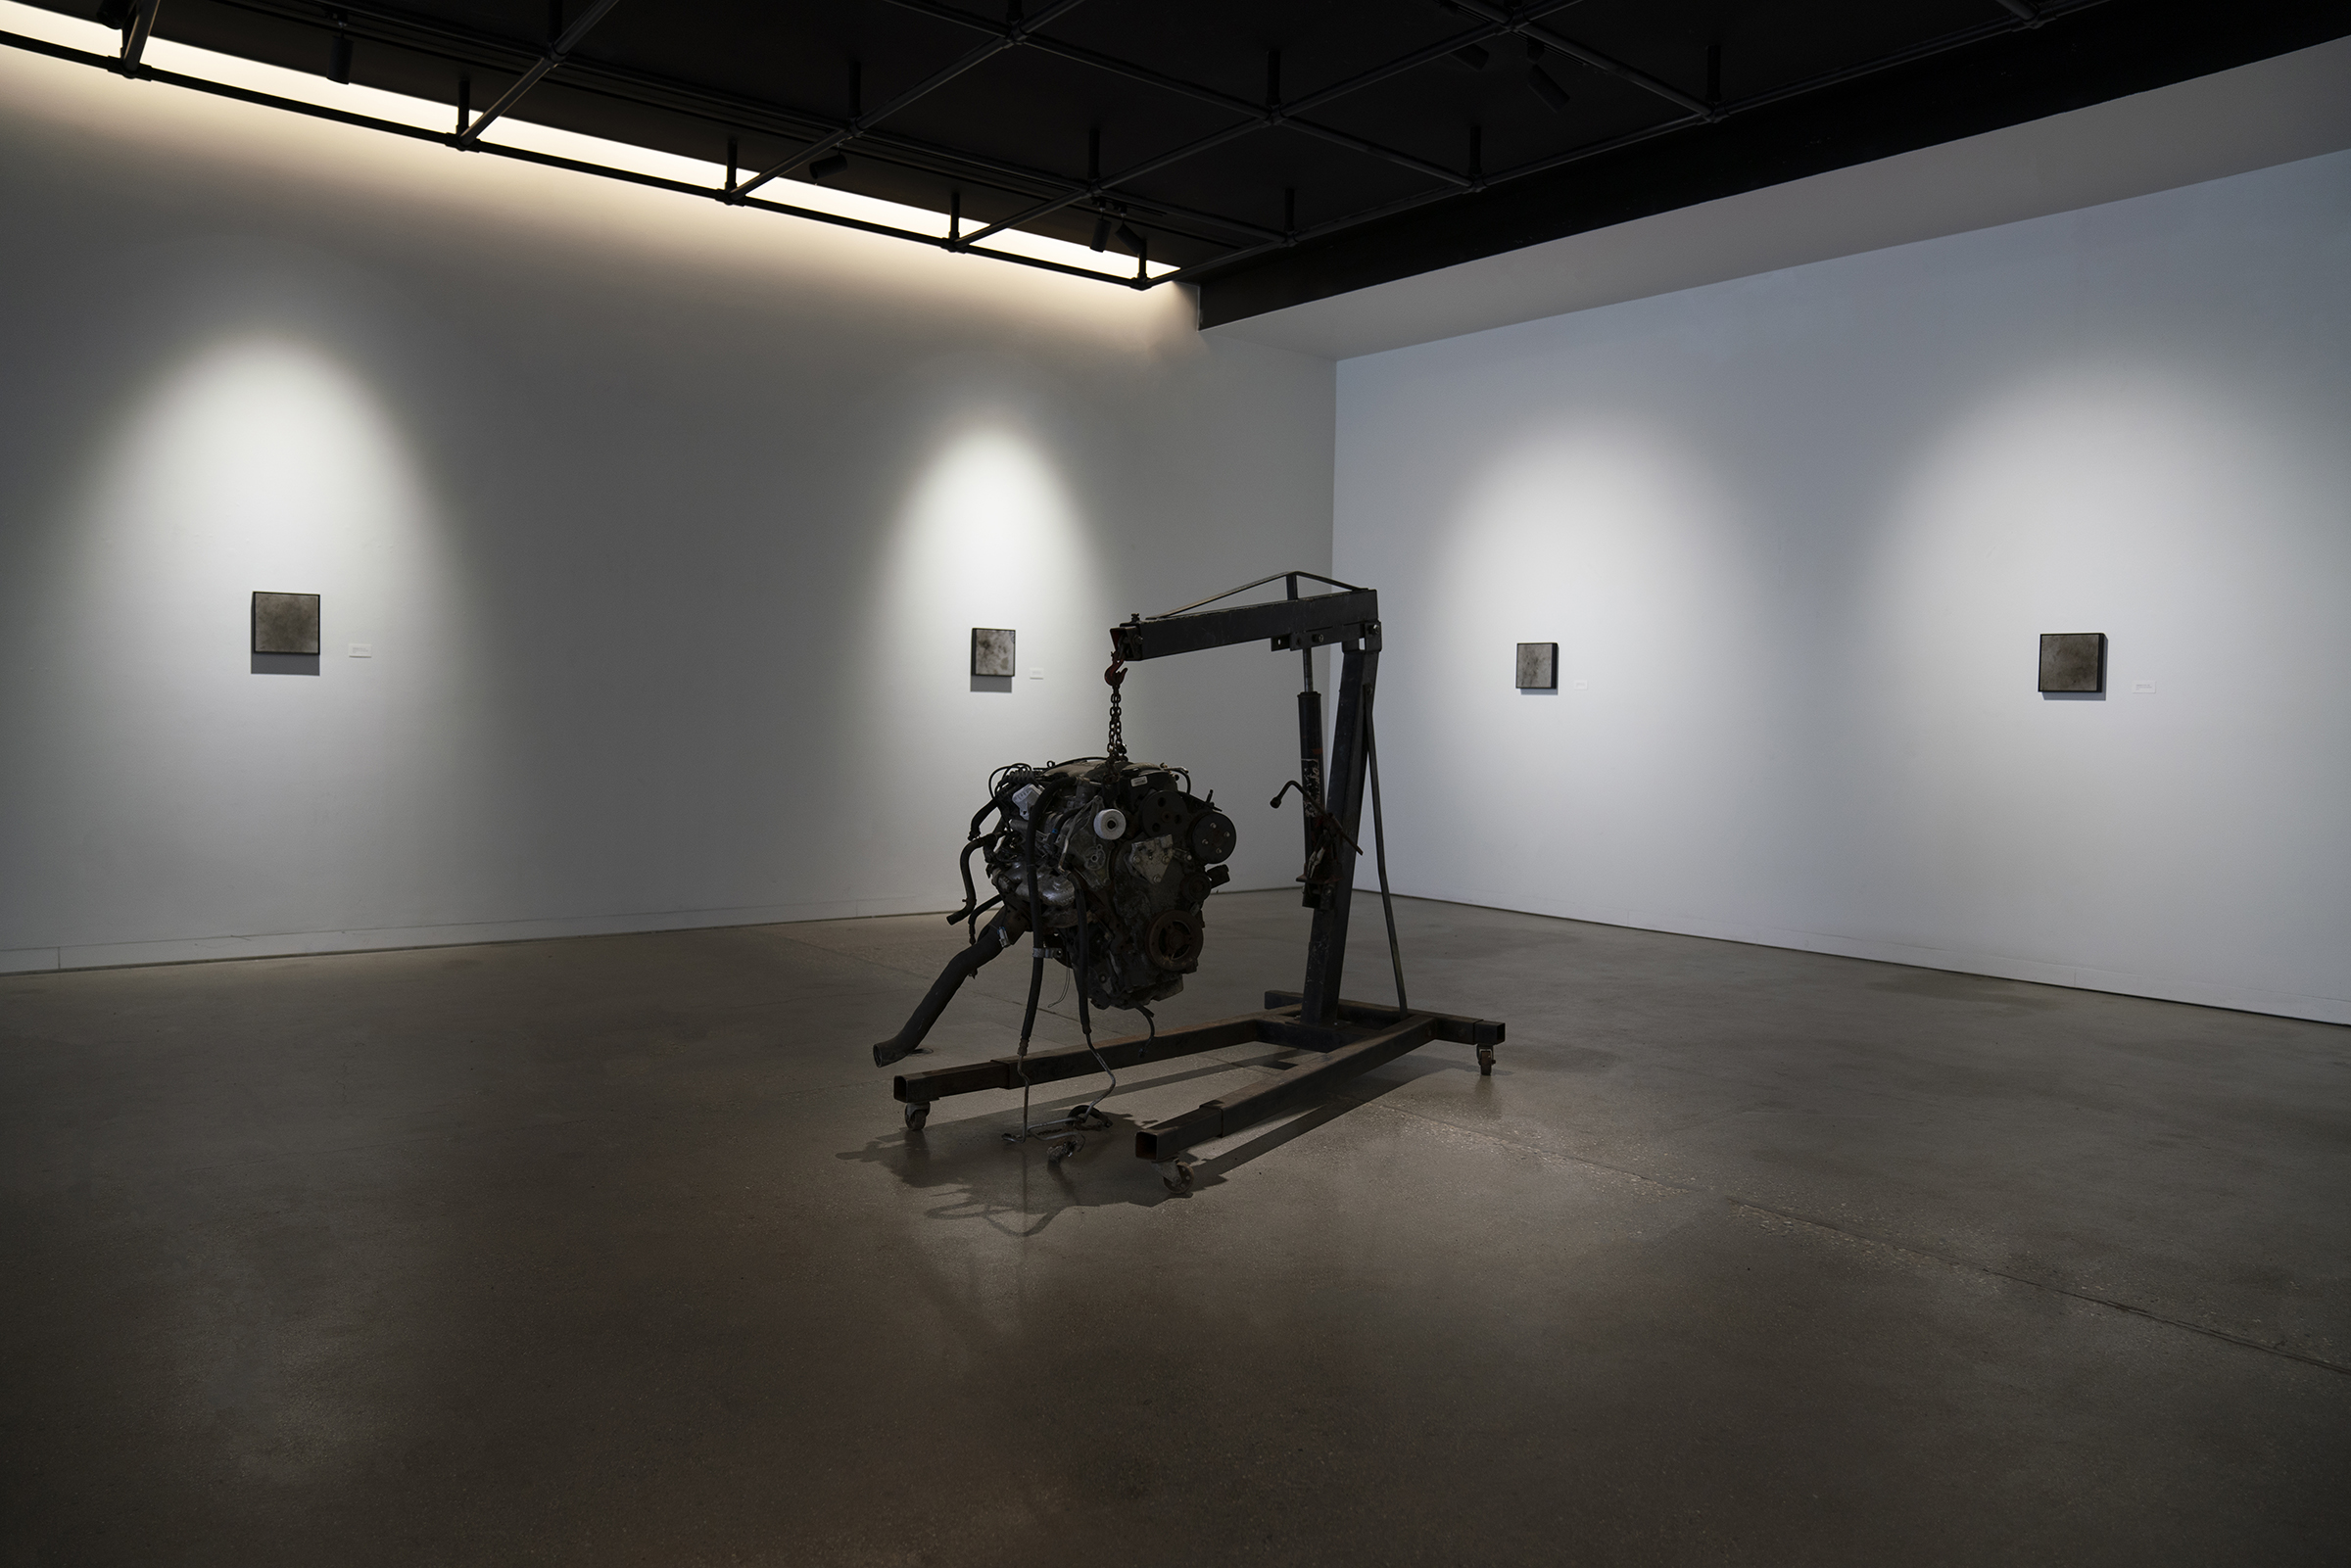 Installation view of Blood, Sweat, and Oil Master of Fine Arts Exhibition by Eric Hazeltine at the Art Lofts Gallery, University of Wisconsin-Madison.